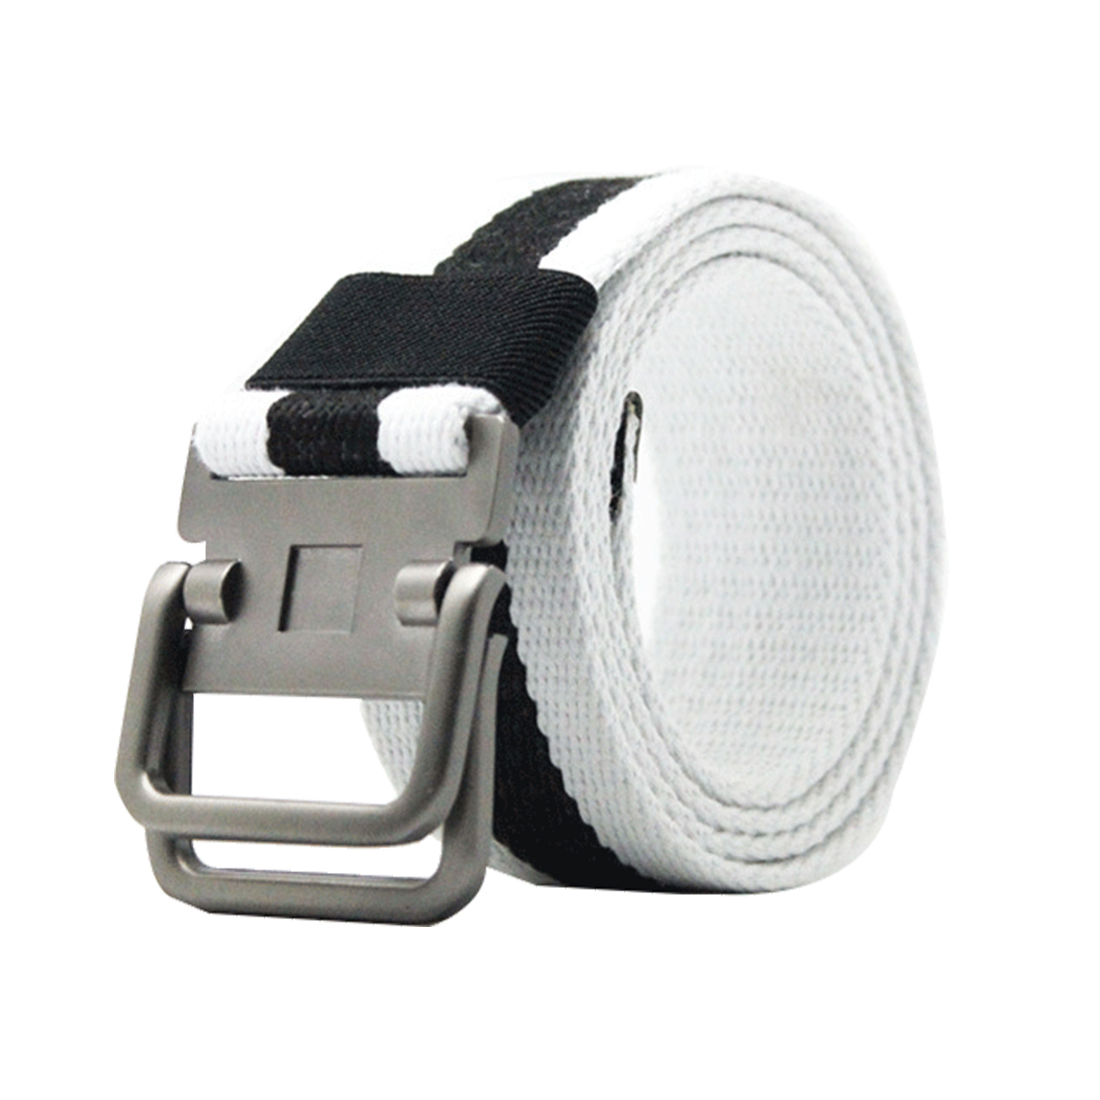 Unisex Canvas Double Ring Adjustable Holeless Metal Buckle Belt White Black